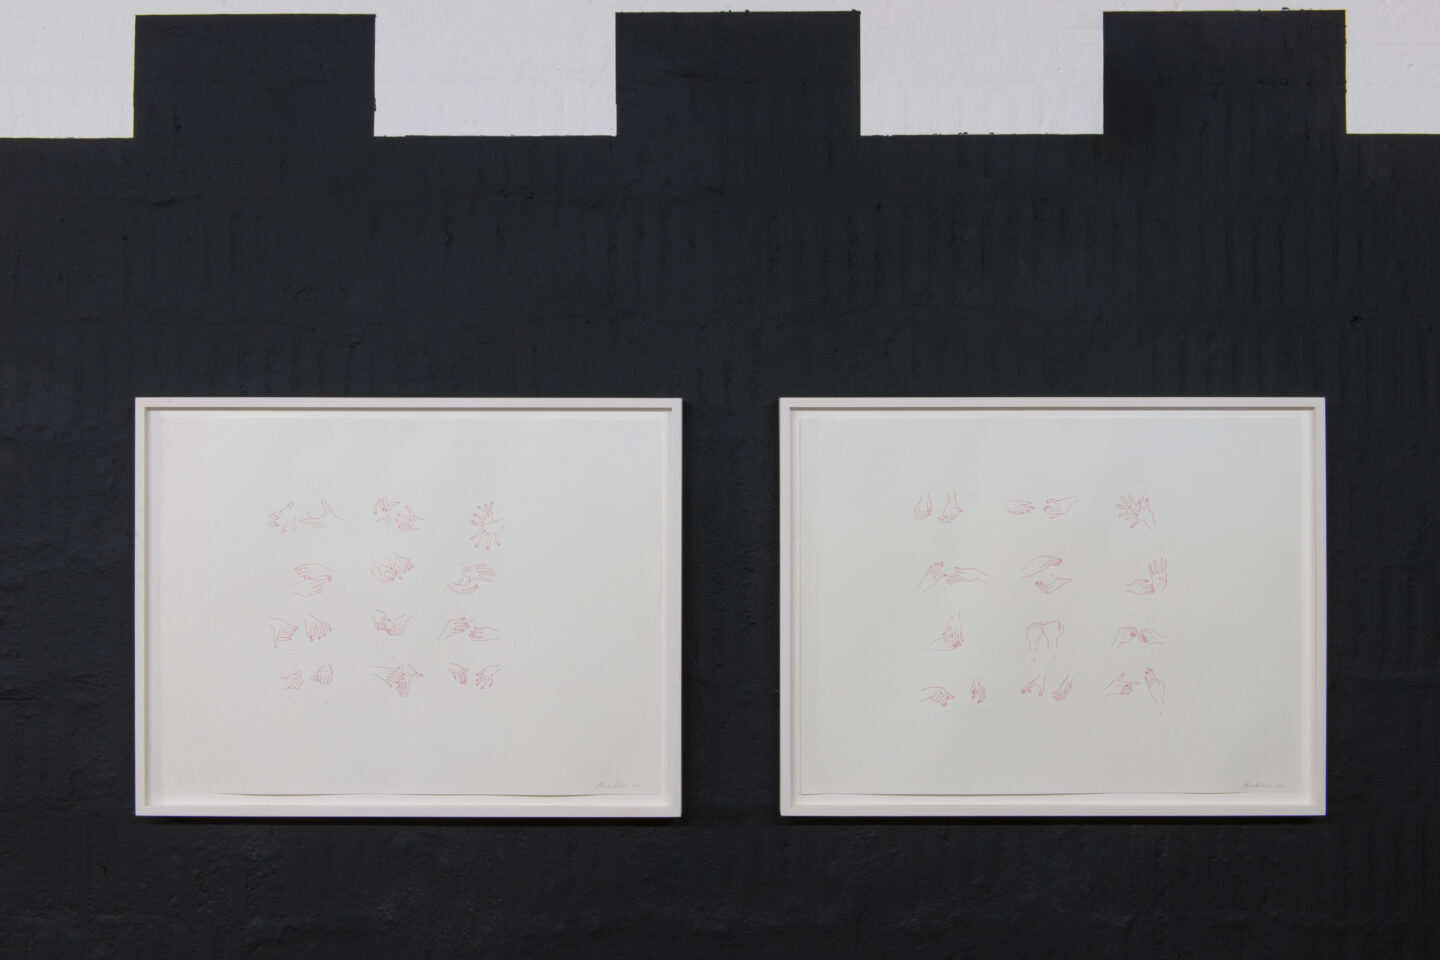 Exhibition View Groupshow «i hate you; view on Madeline Hollander, Closeup 1+2, both 2017, Ink on paper 45.7 x 61 cm each» at Plymouth Rock, Zurich, 2020 / Courtesy: the artist and Plymouth Rock